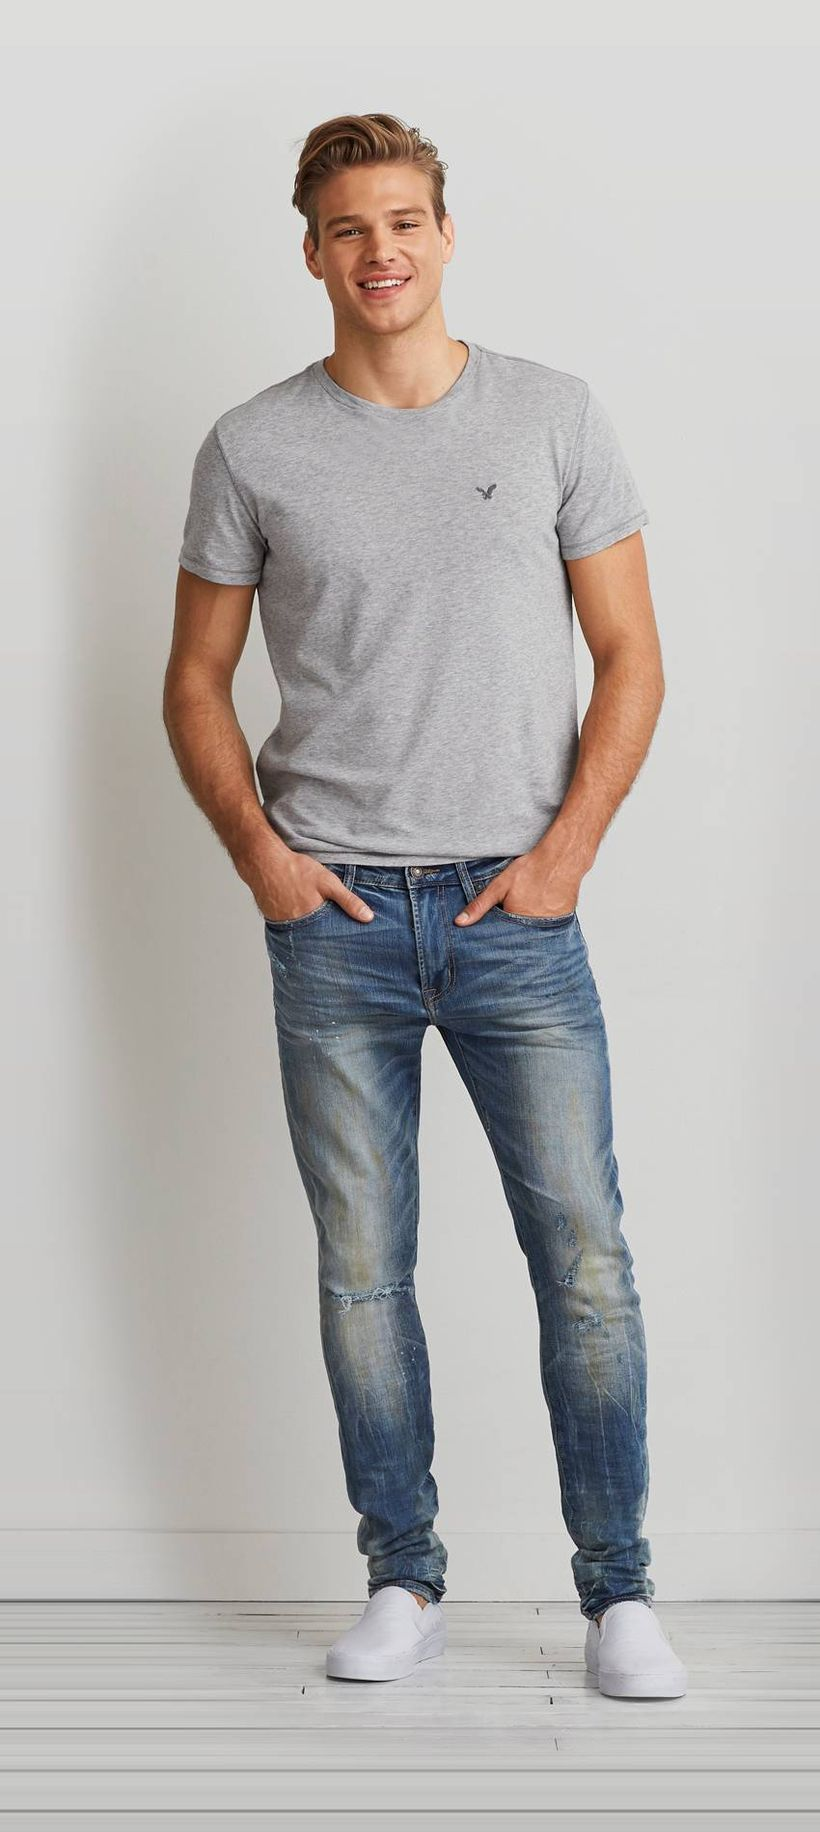 Stylish men's jeans outfits ideas in 2017 78